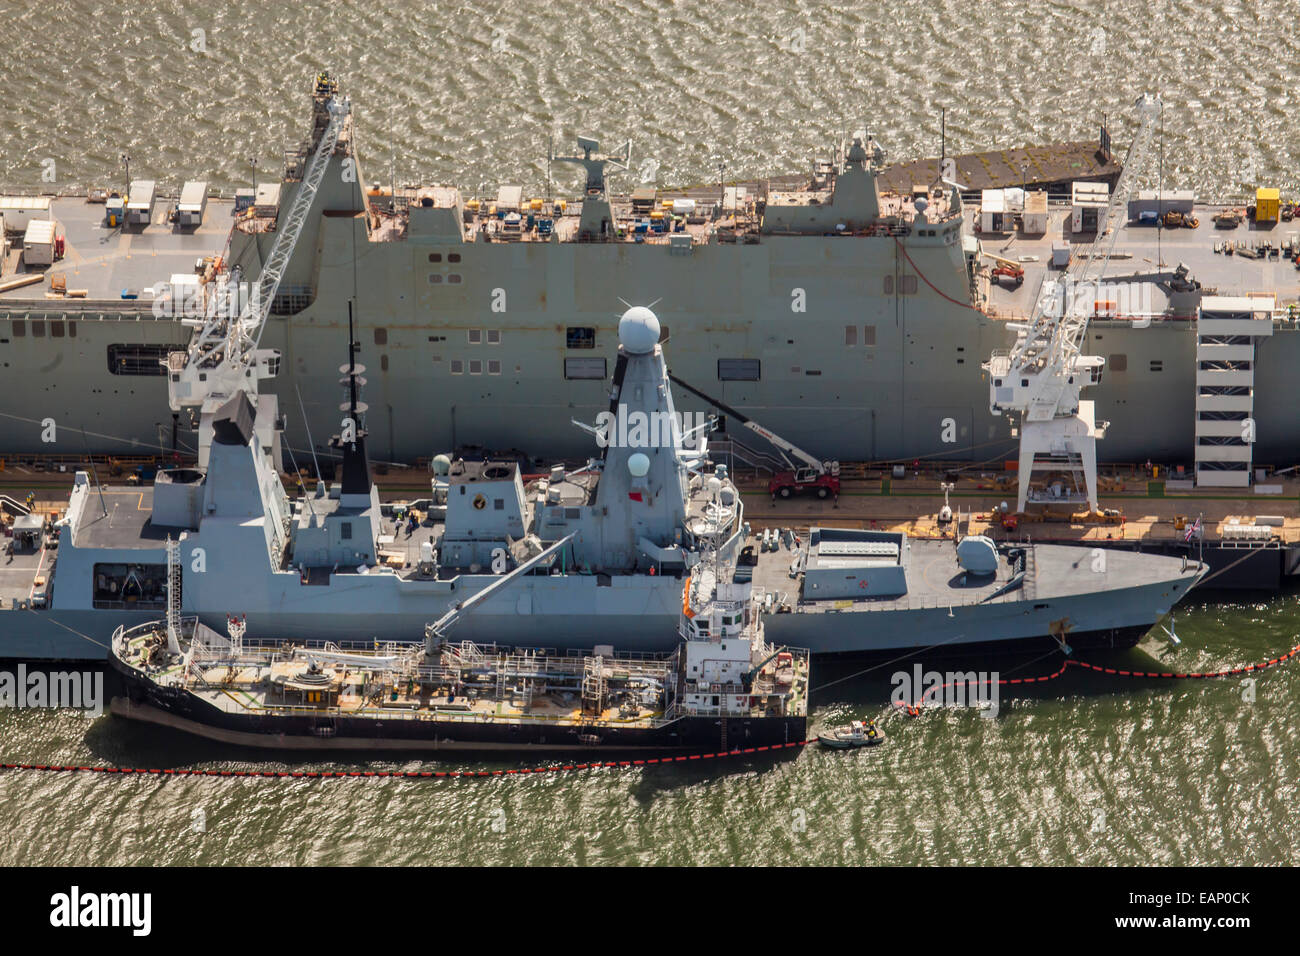 Aerial view of HMAS Canberra under construction in Williamstown, Melbourne. - Stock Image